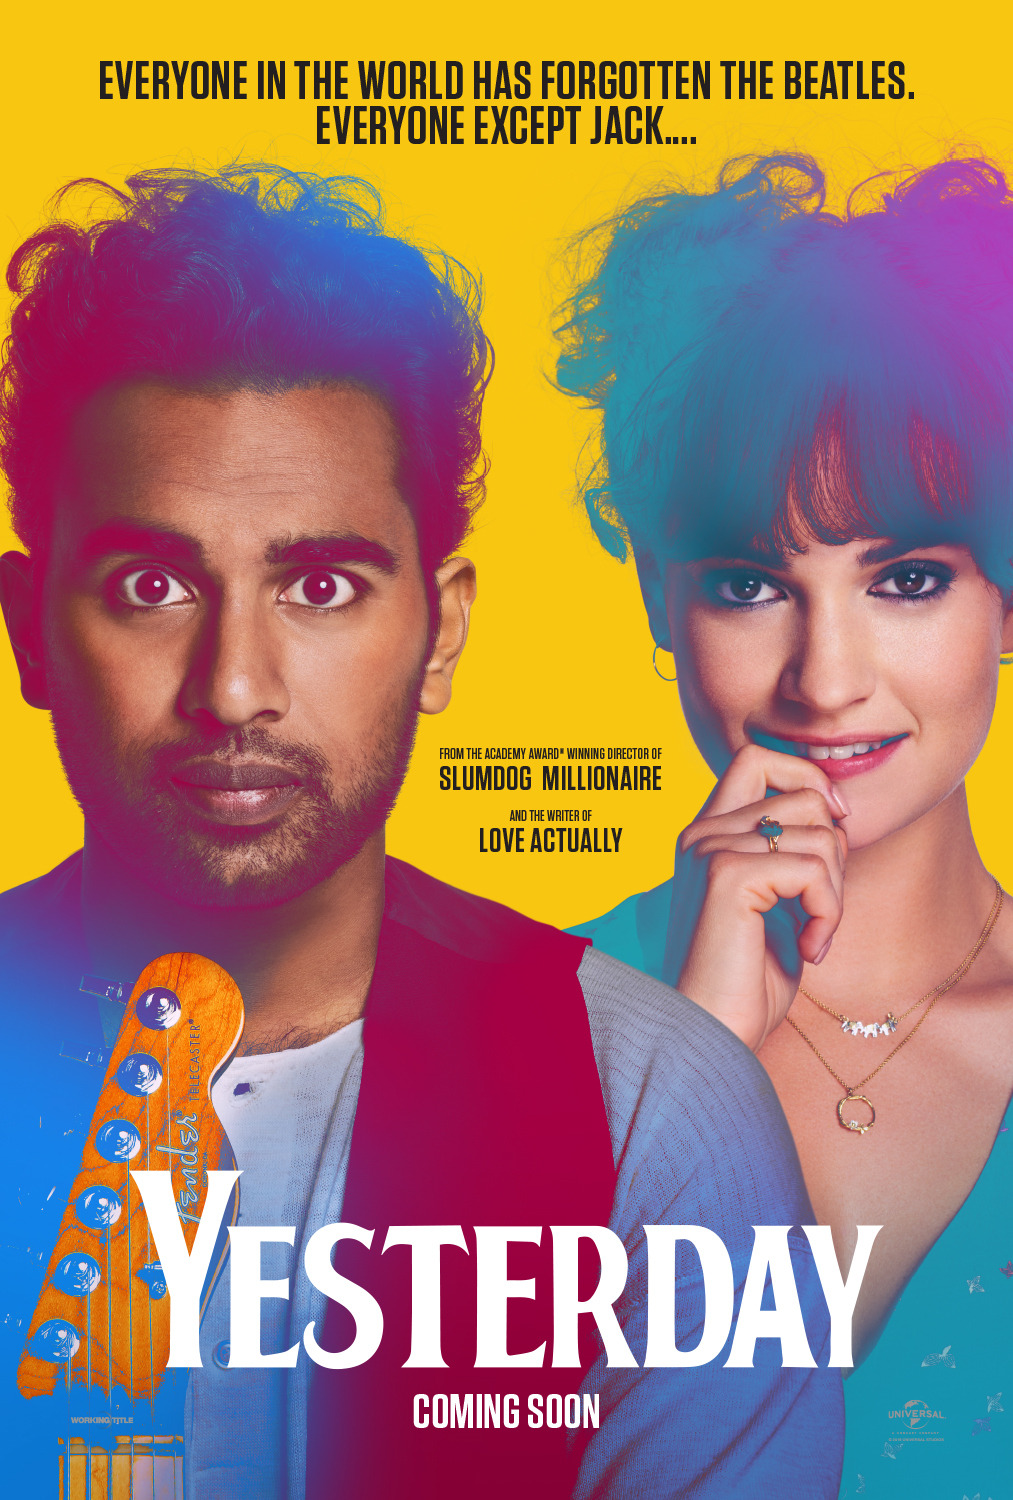 Yesterday film review: Does Danny Boyle's Beatles comedy sing?